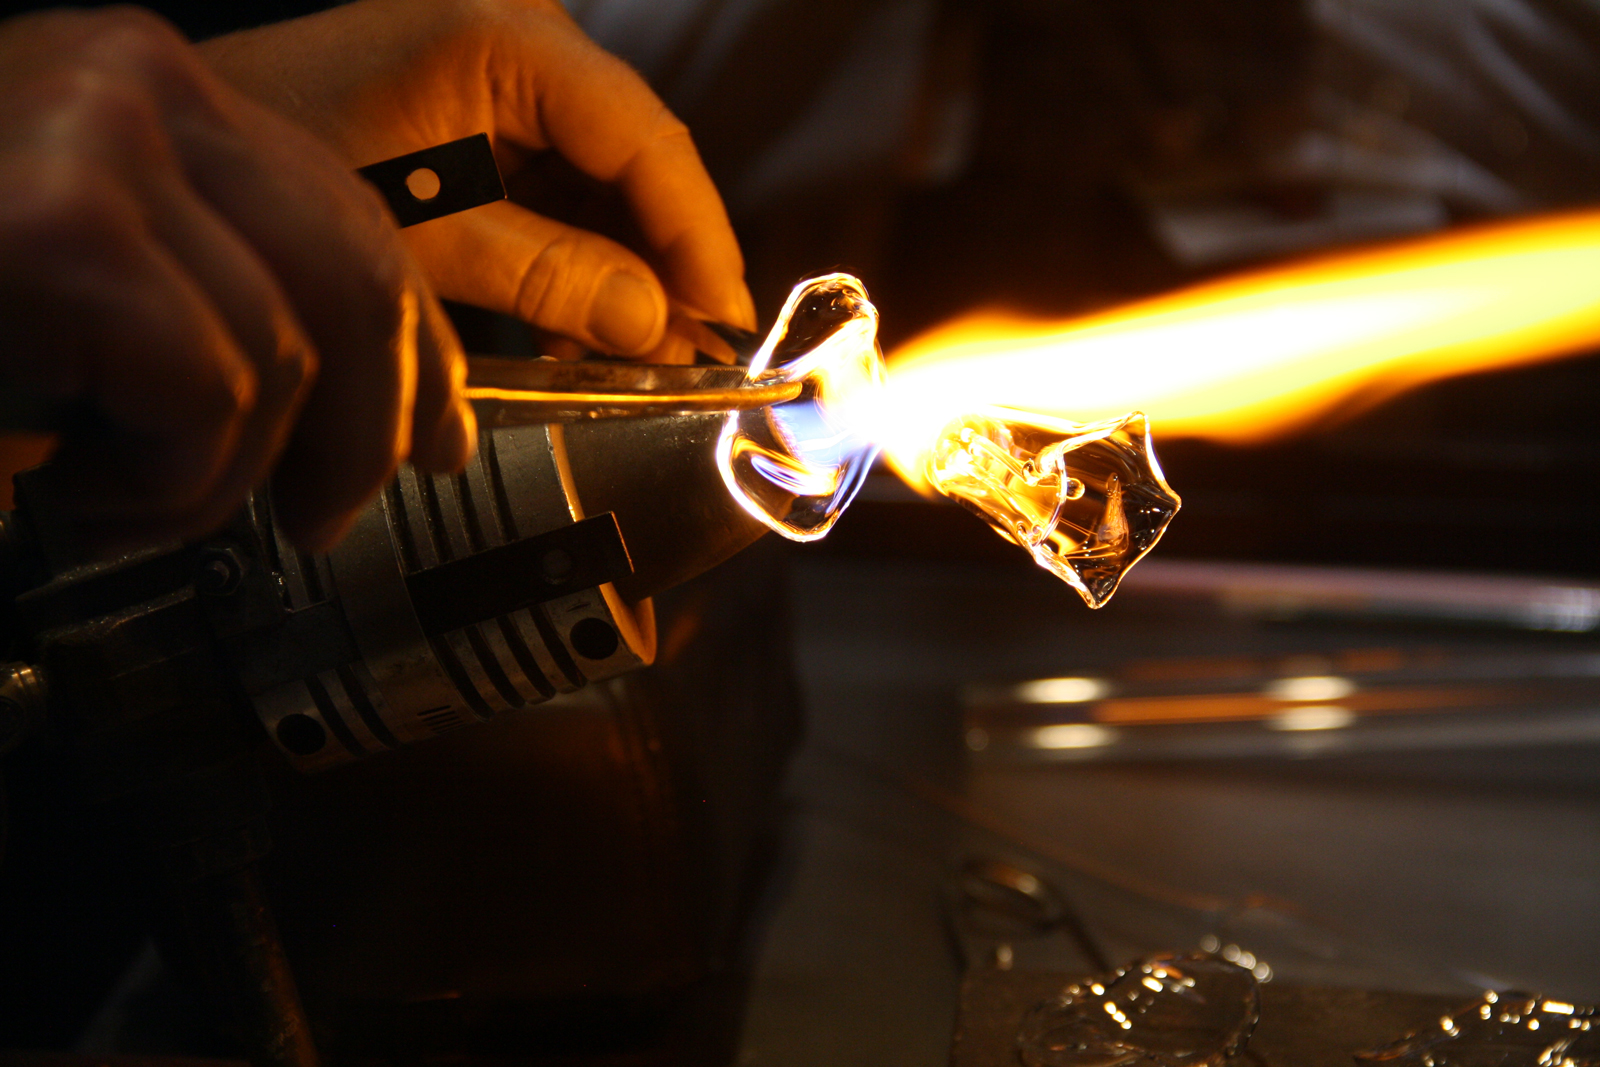 Live flameworking demonstration